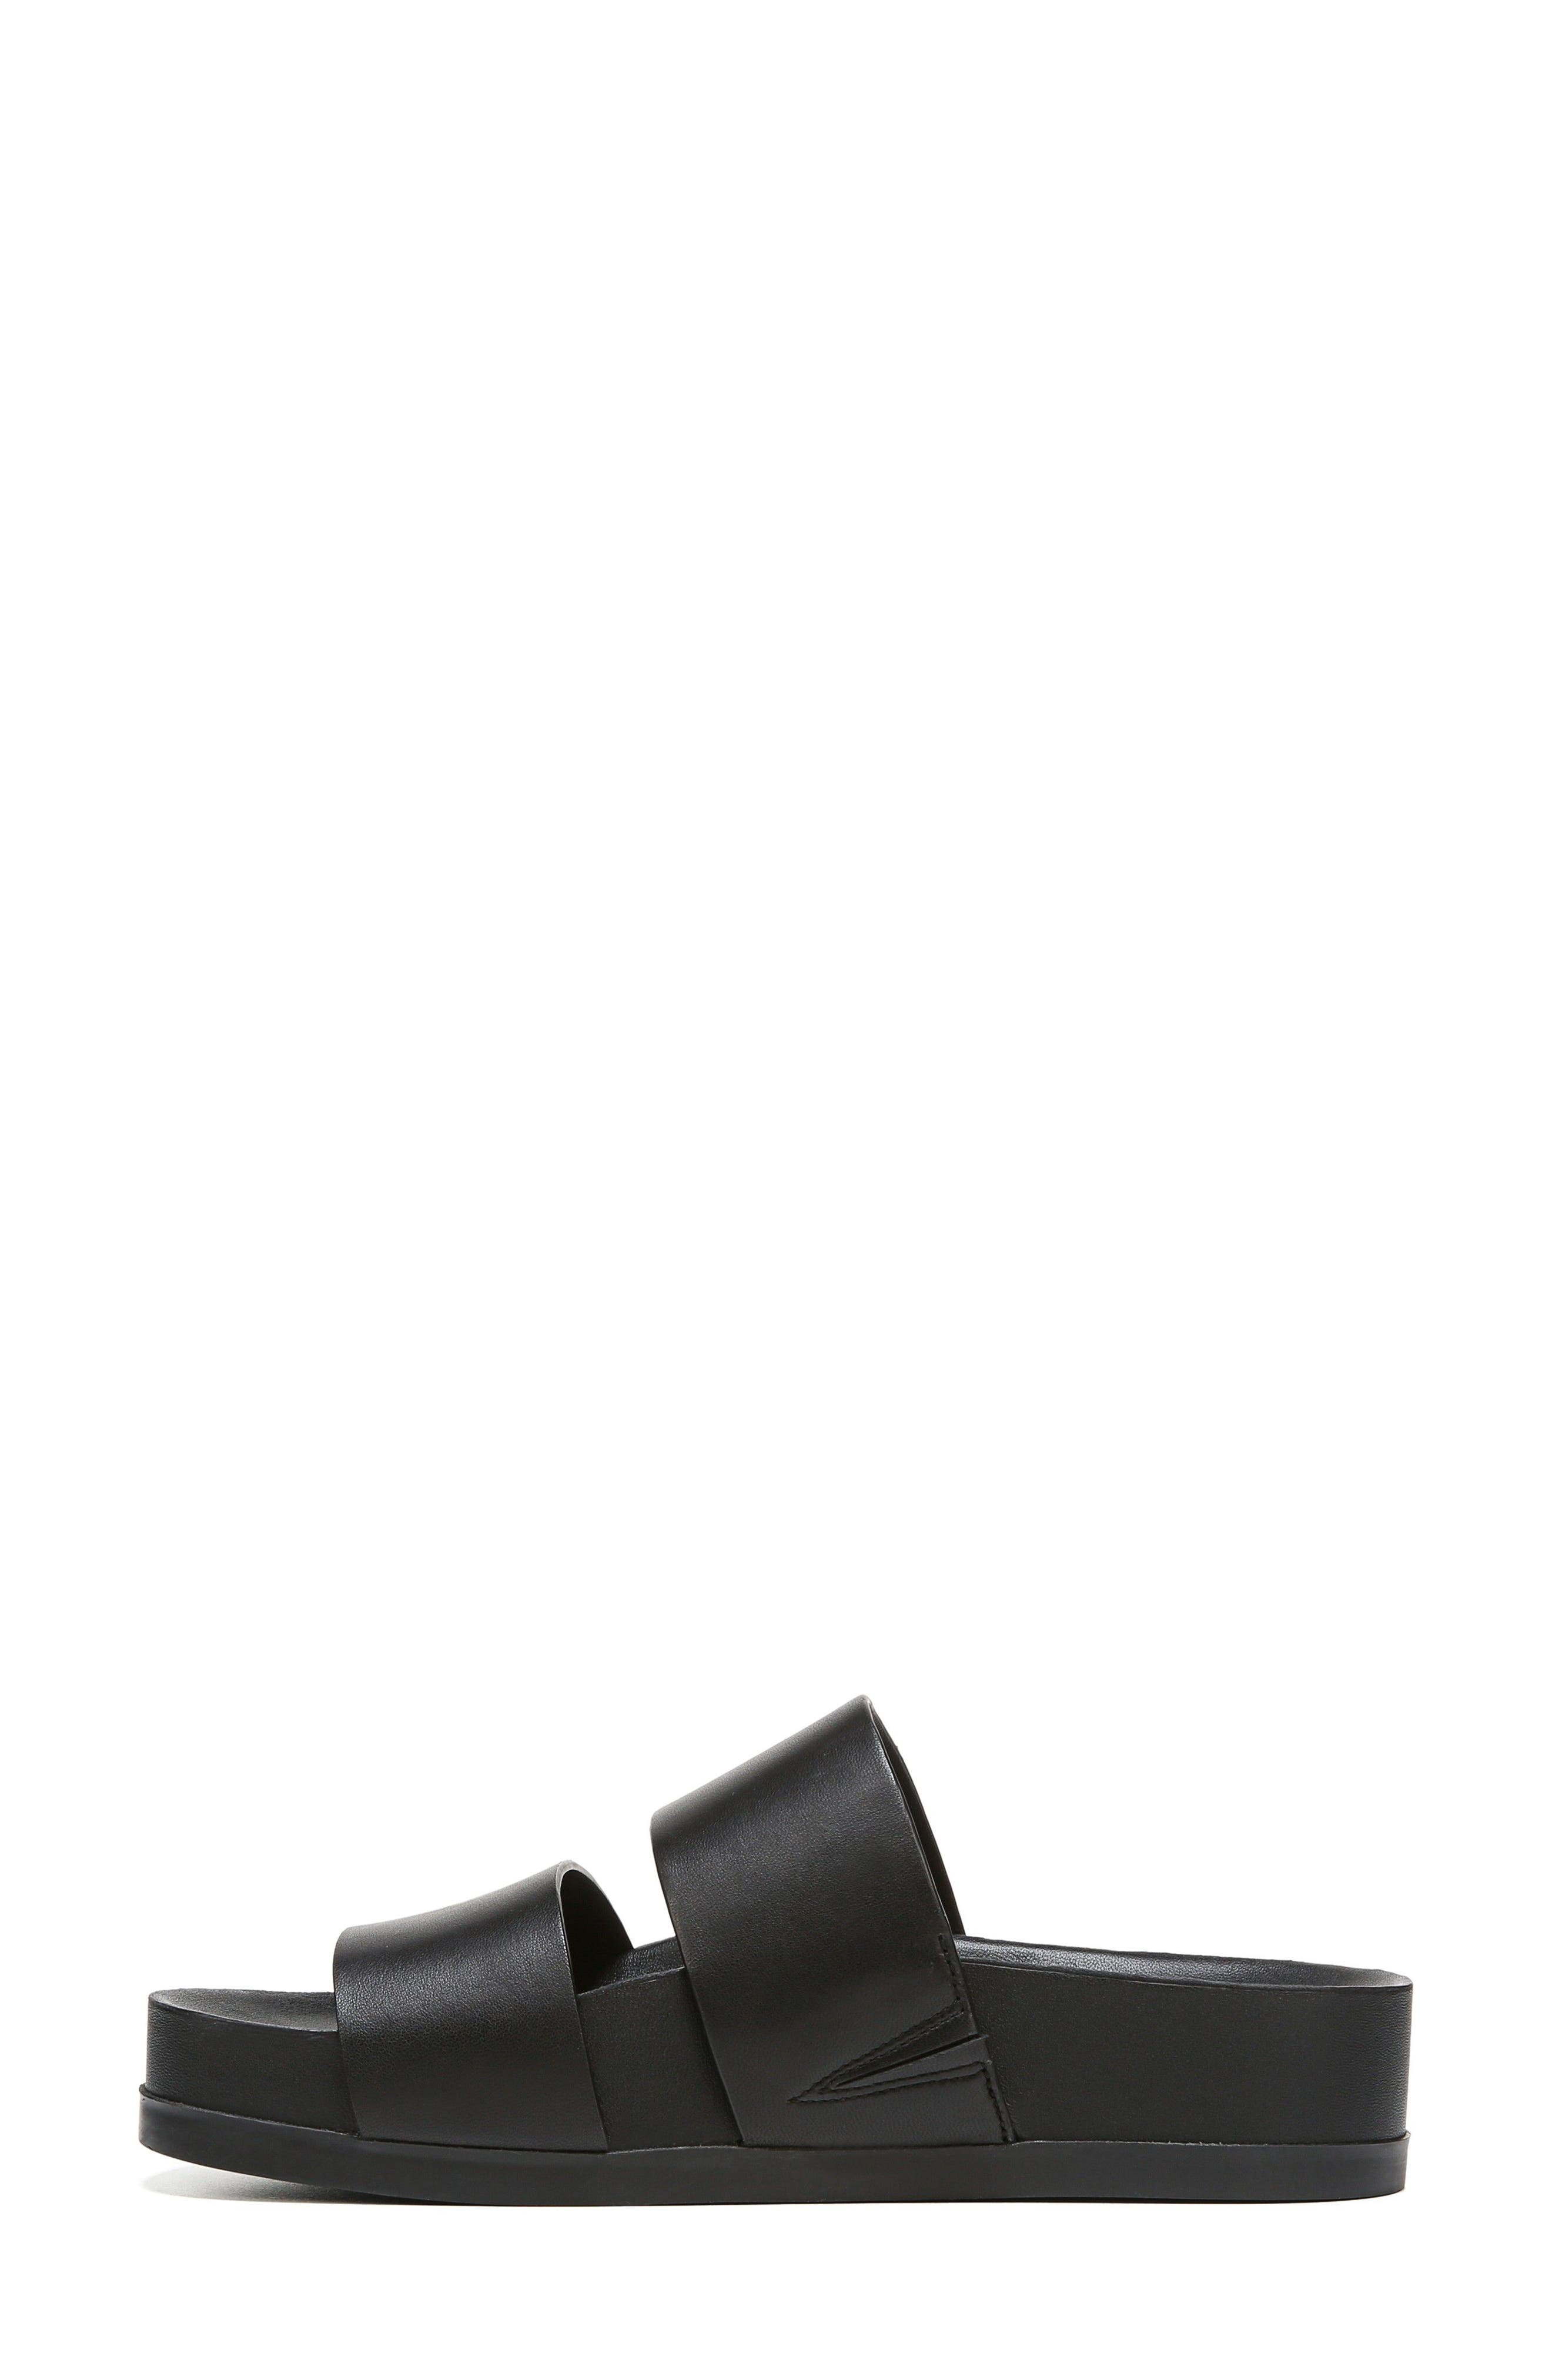 VIA SPIGA,                             Milton Slide Sandal,                             Alternate thumbnail 3, color,                             001